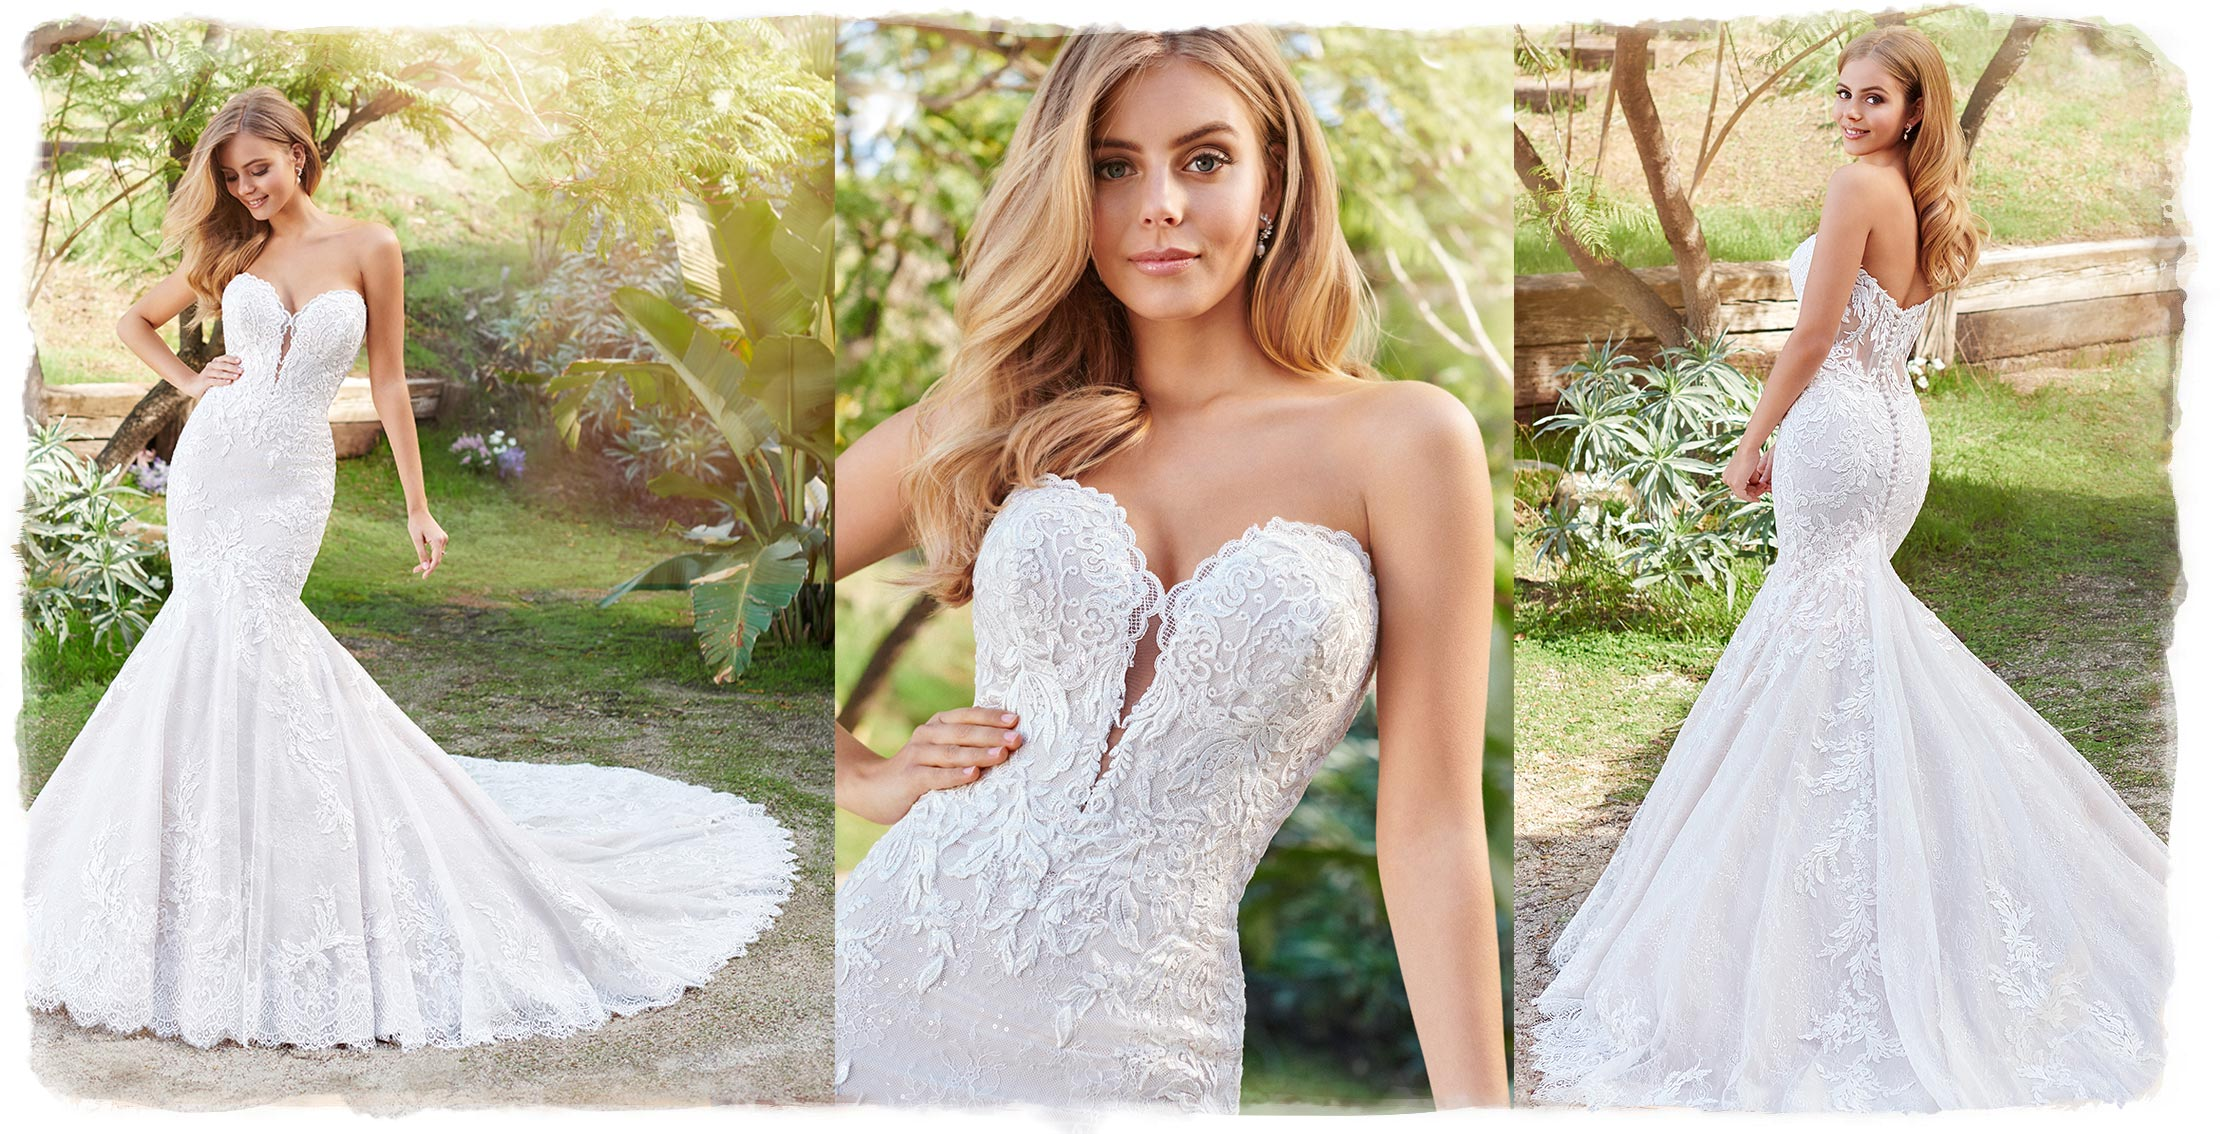 3 photos of blonde model in strapless wedding dress